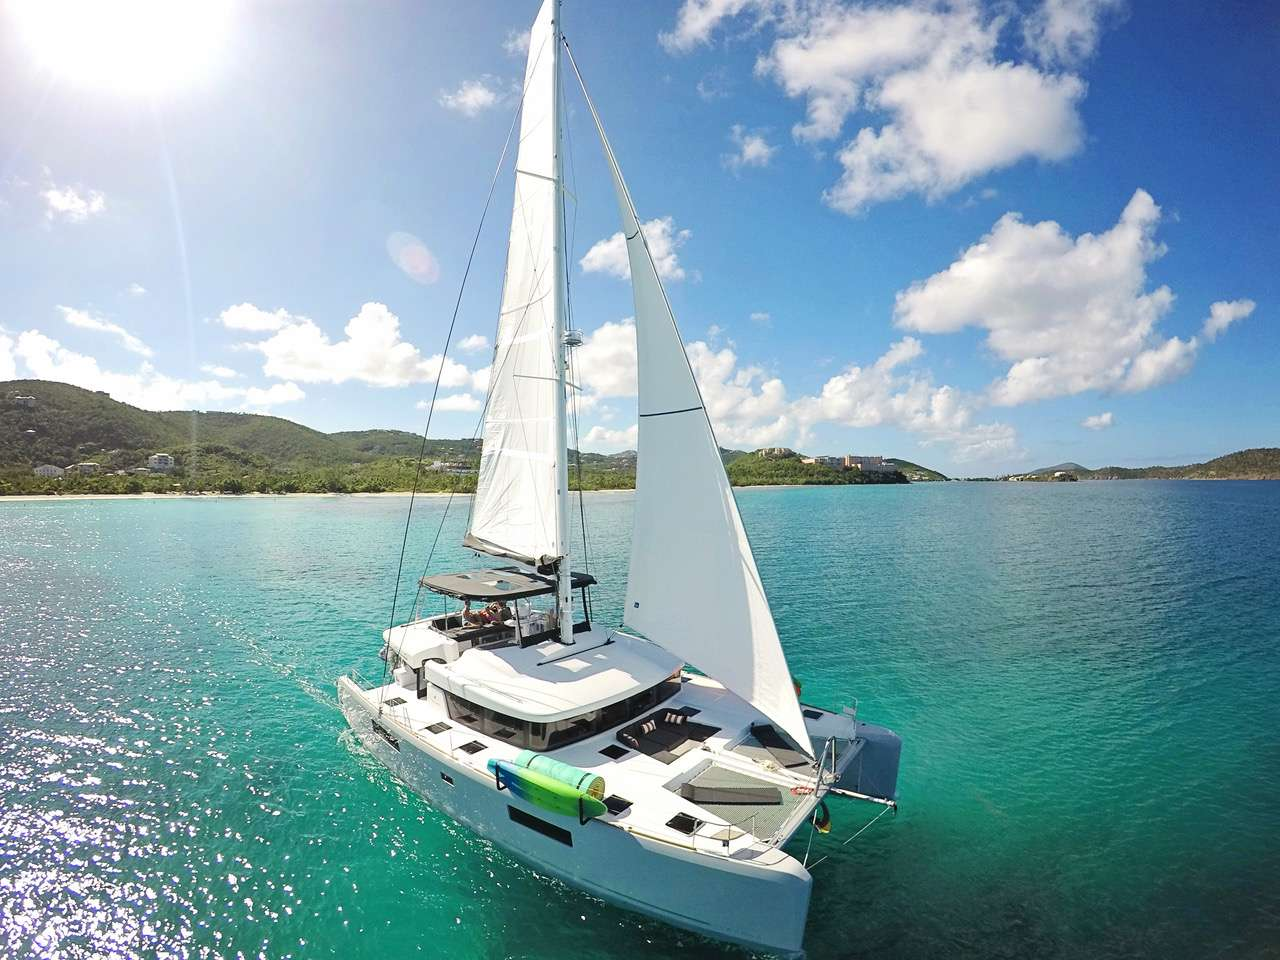 Charter with ISLAND HOPPIN' on compassyachtcharters.com